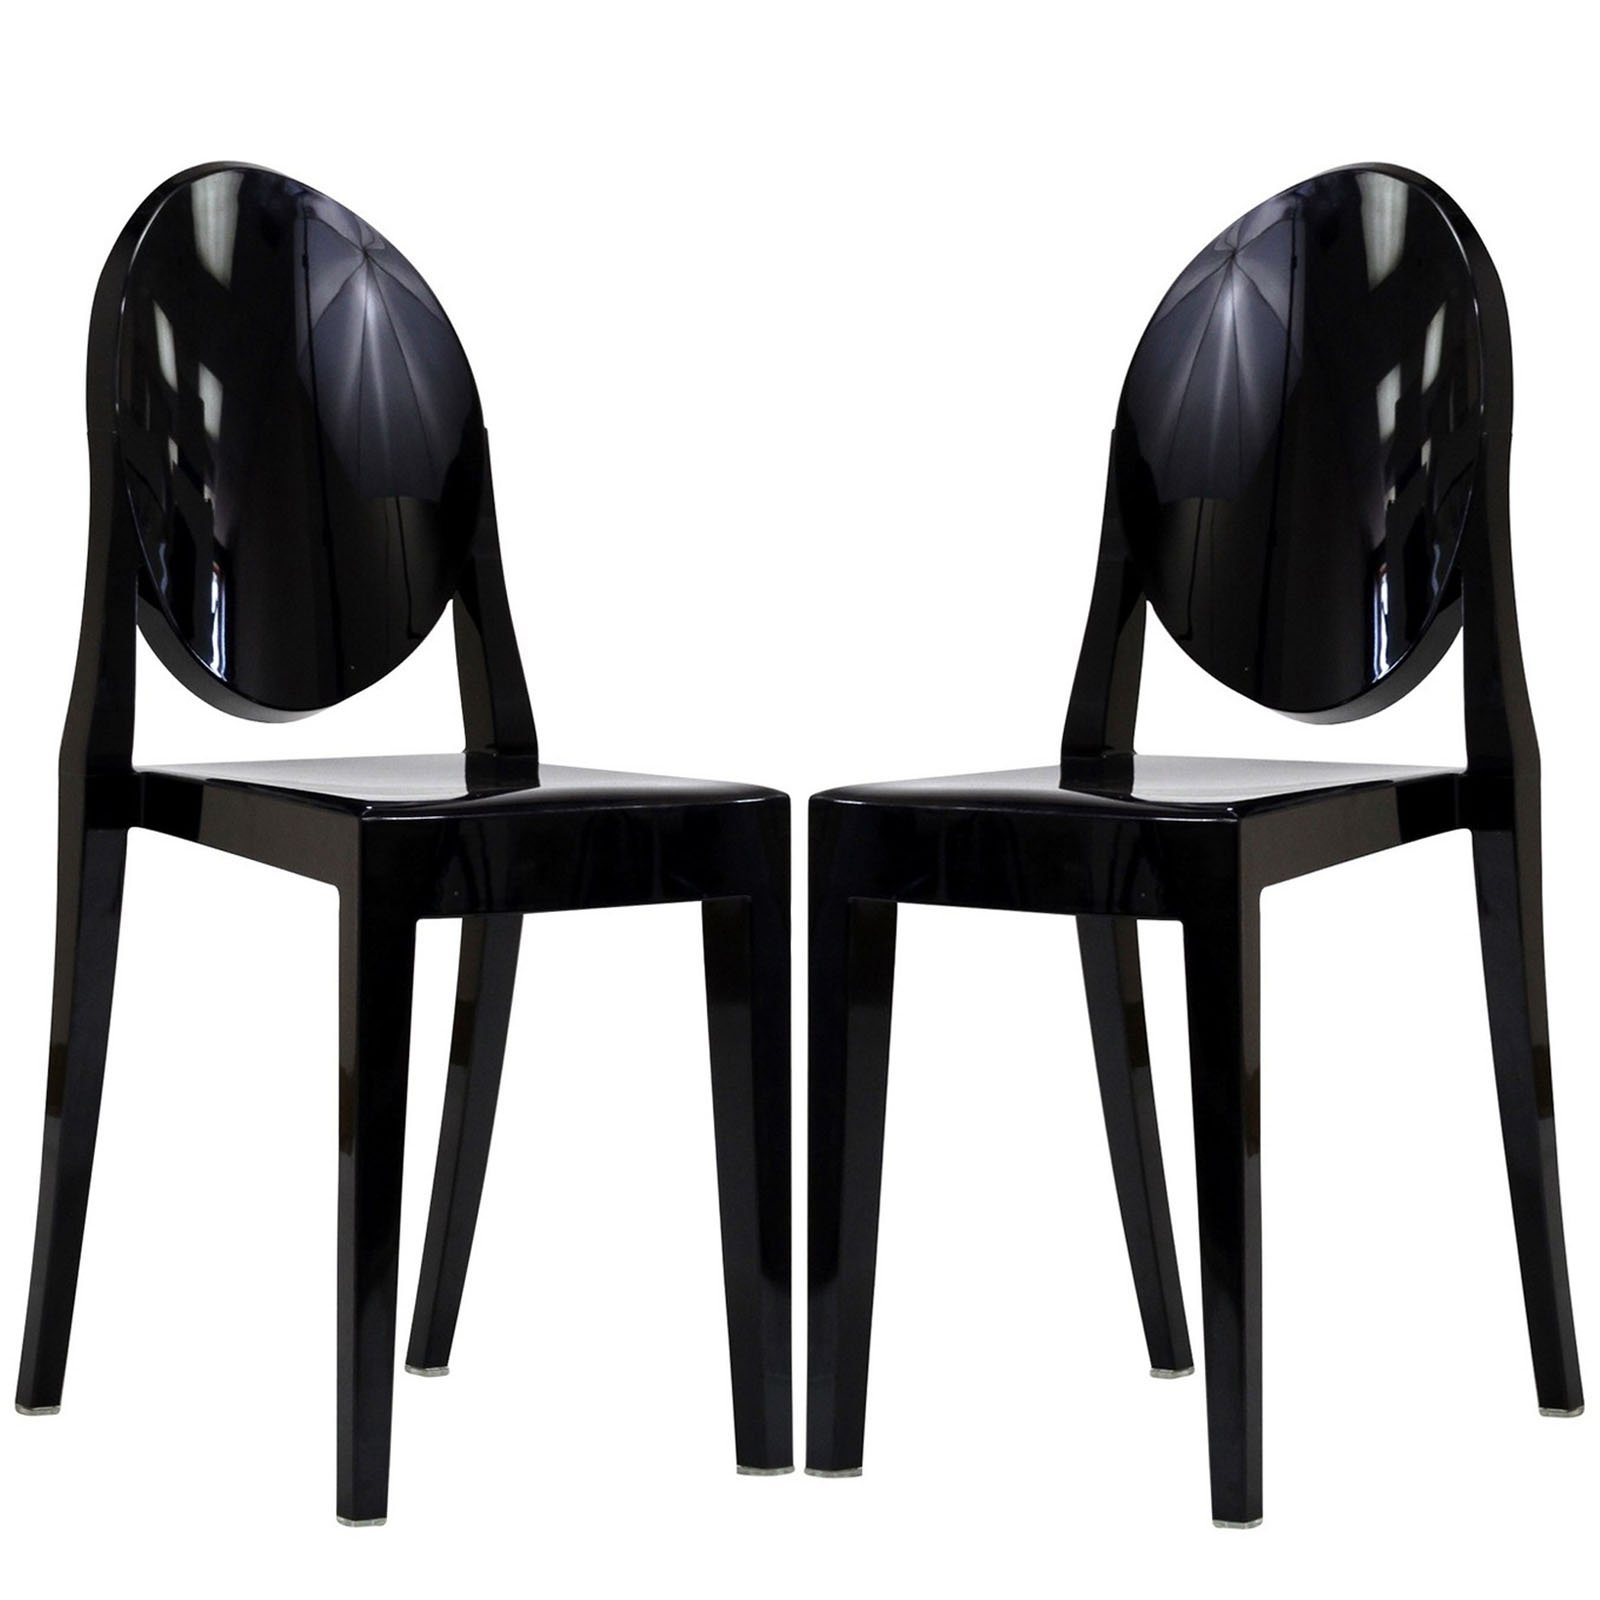 Modway Casper Modern Acrylic Dining Side Chairs in Black - Set of 2 by Modway